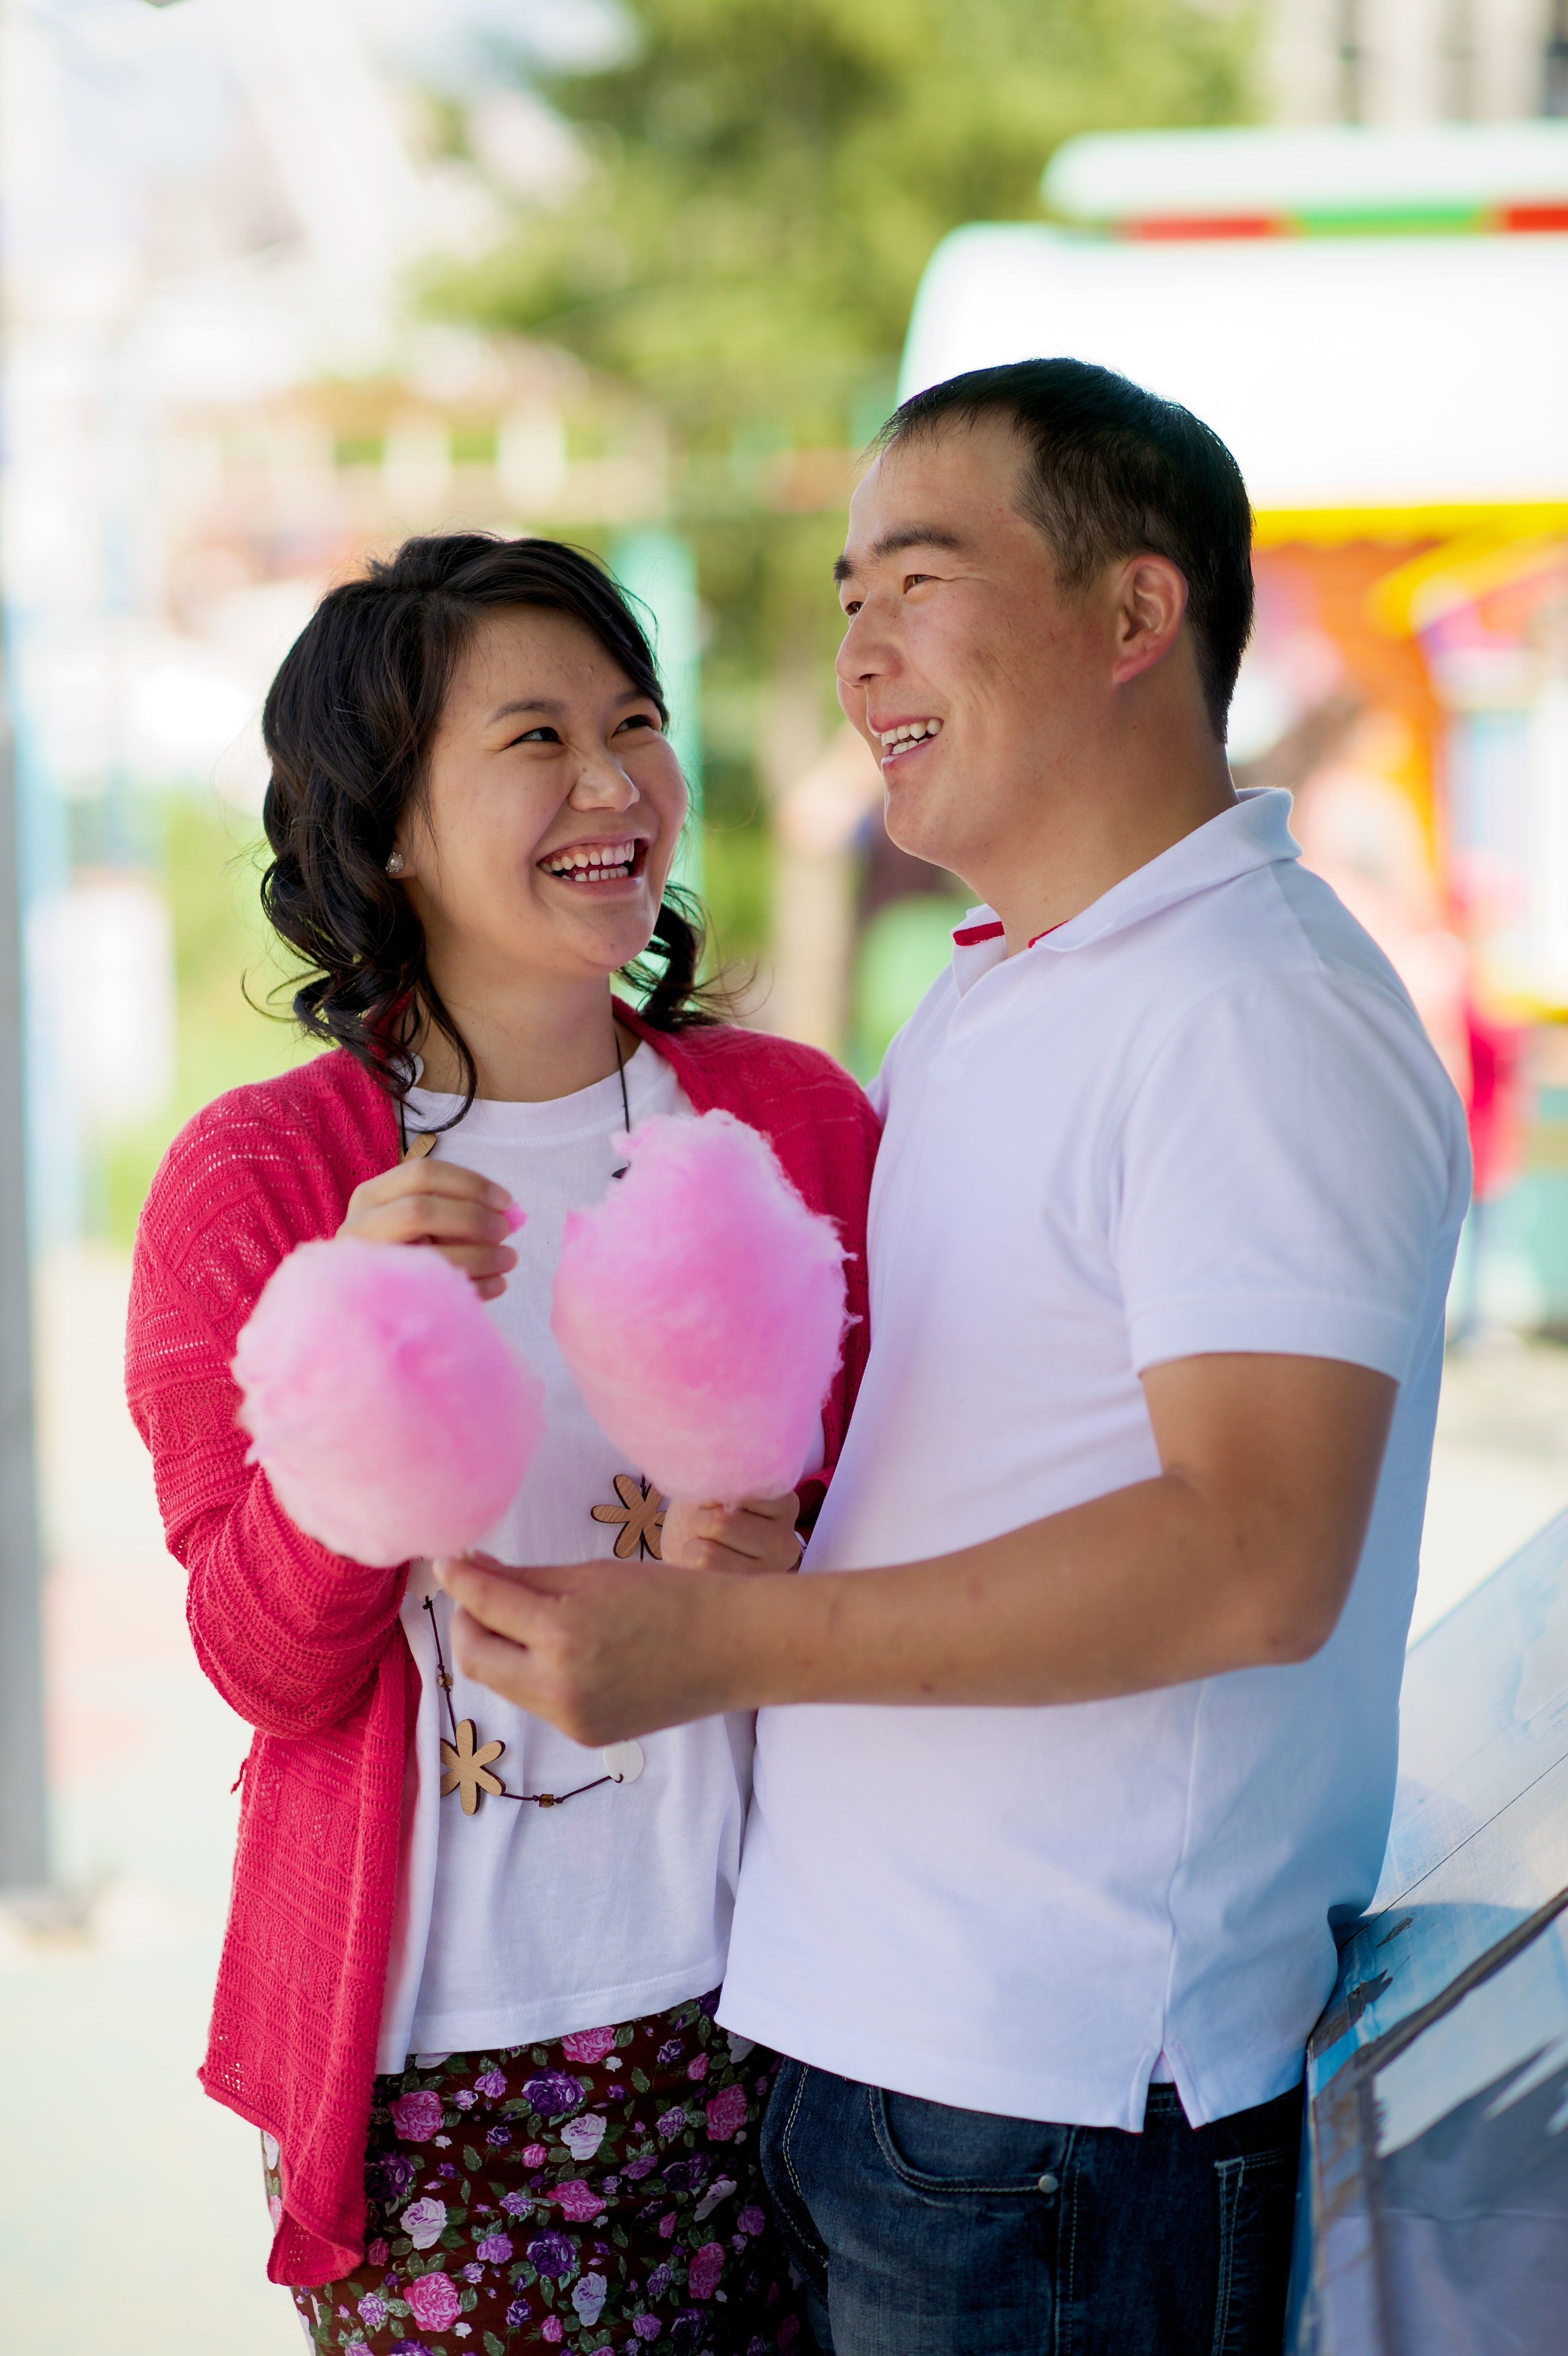 A couple at a carnival, holding cotton candy.